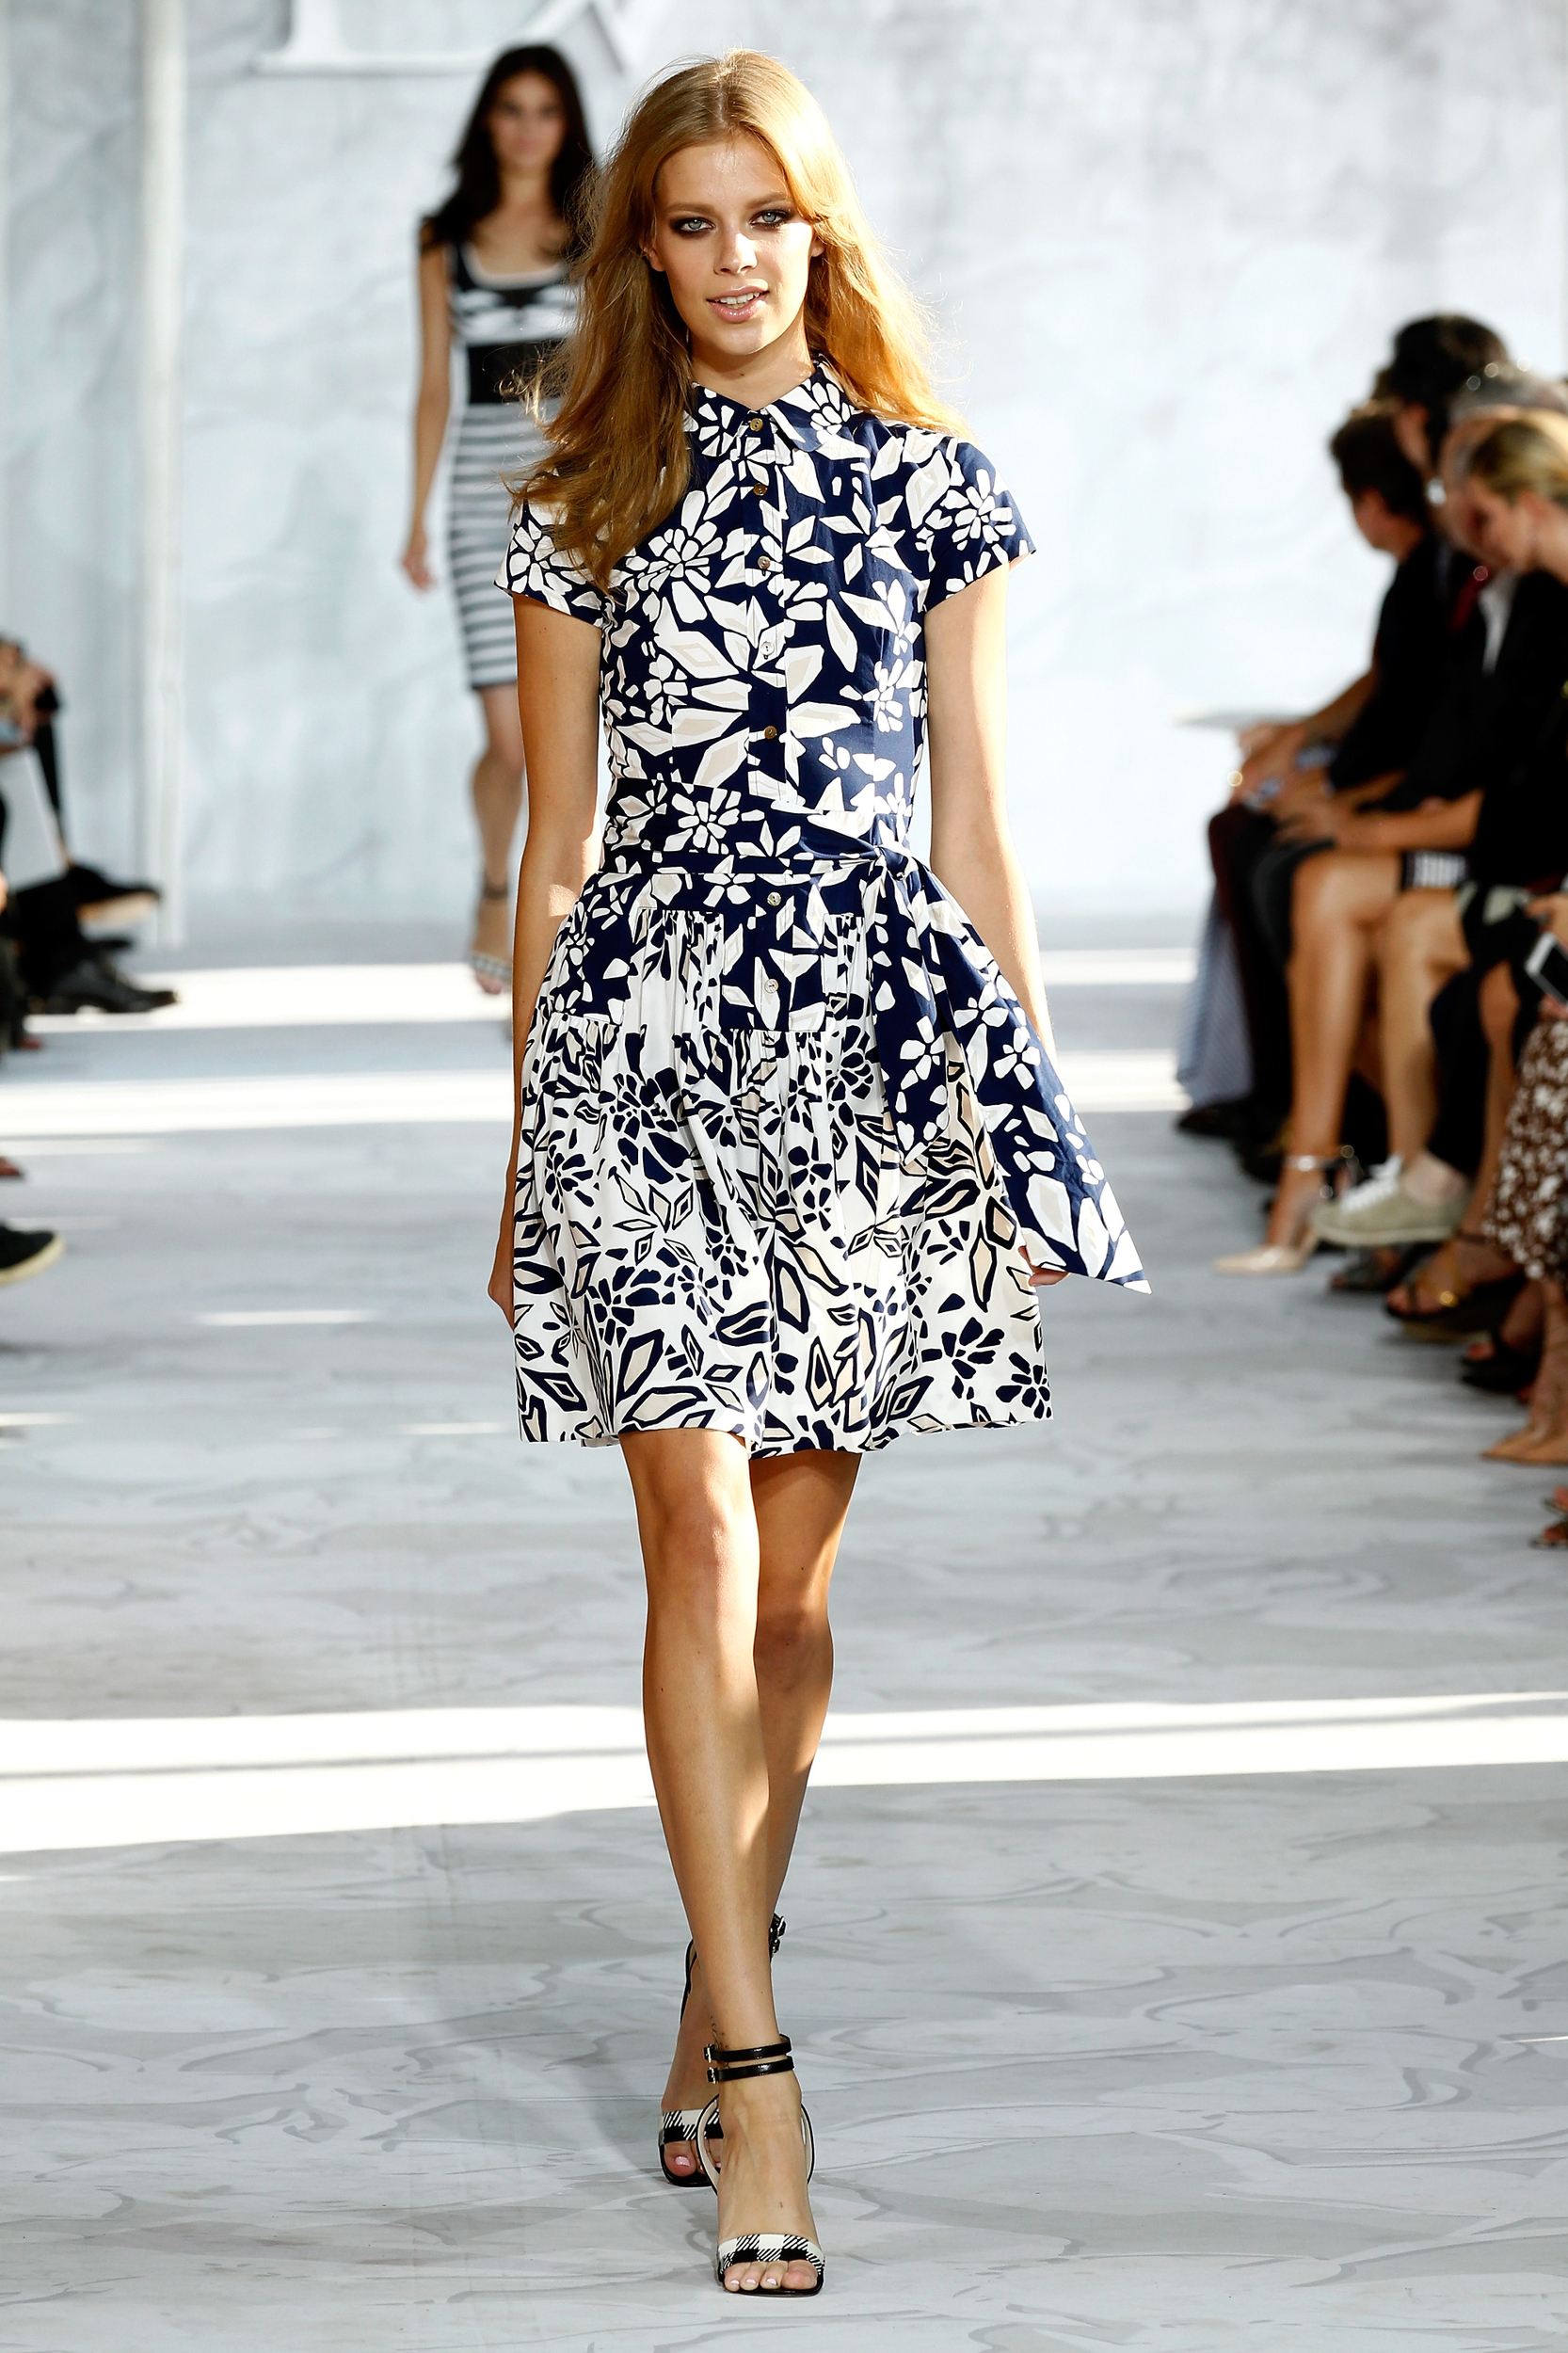 http://www.blogcdn.com/slideshows/images/slides/291/153/5/S2911535/slug/l/diane-von-furstenberg-runway-mercedes-benz-fashion-week-spri-1.jpg